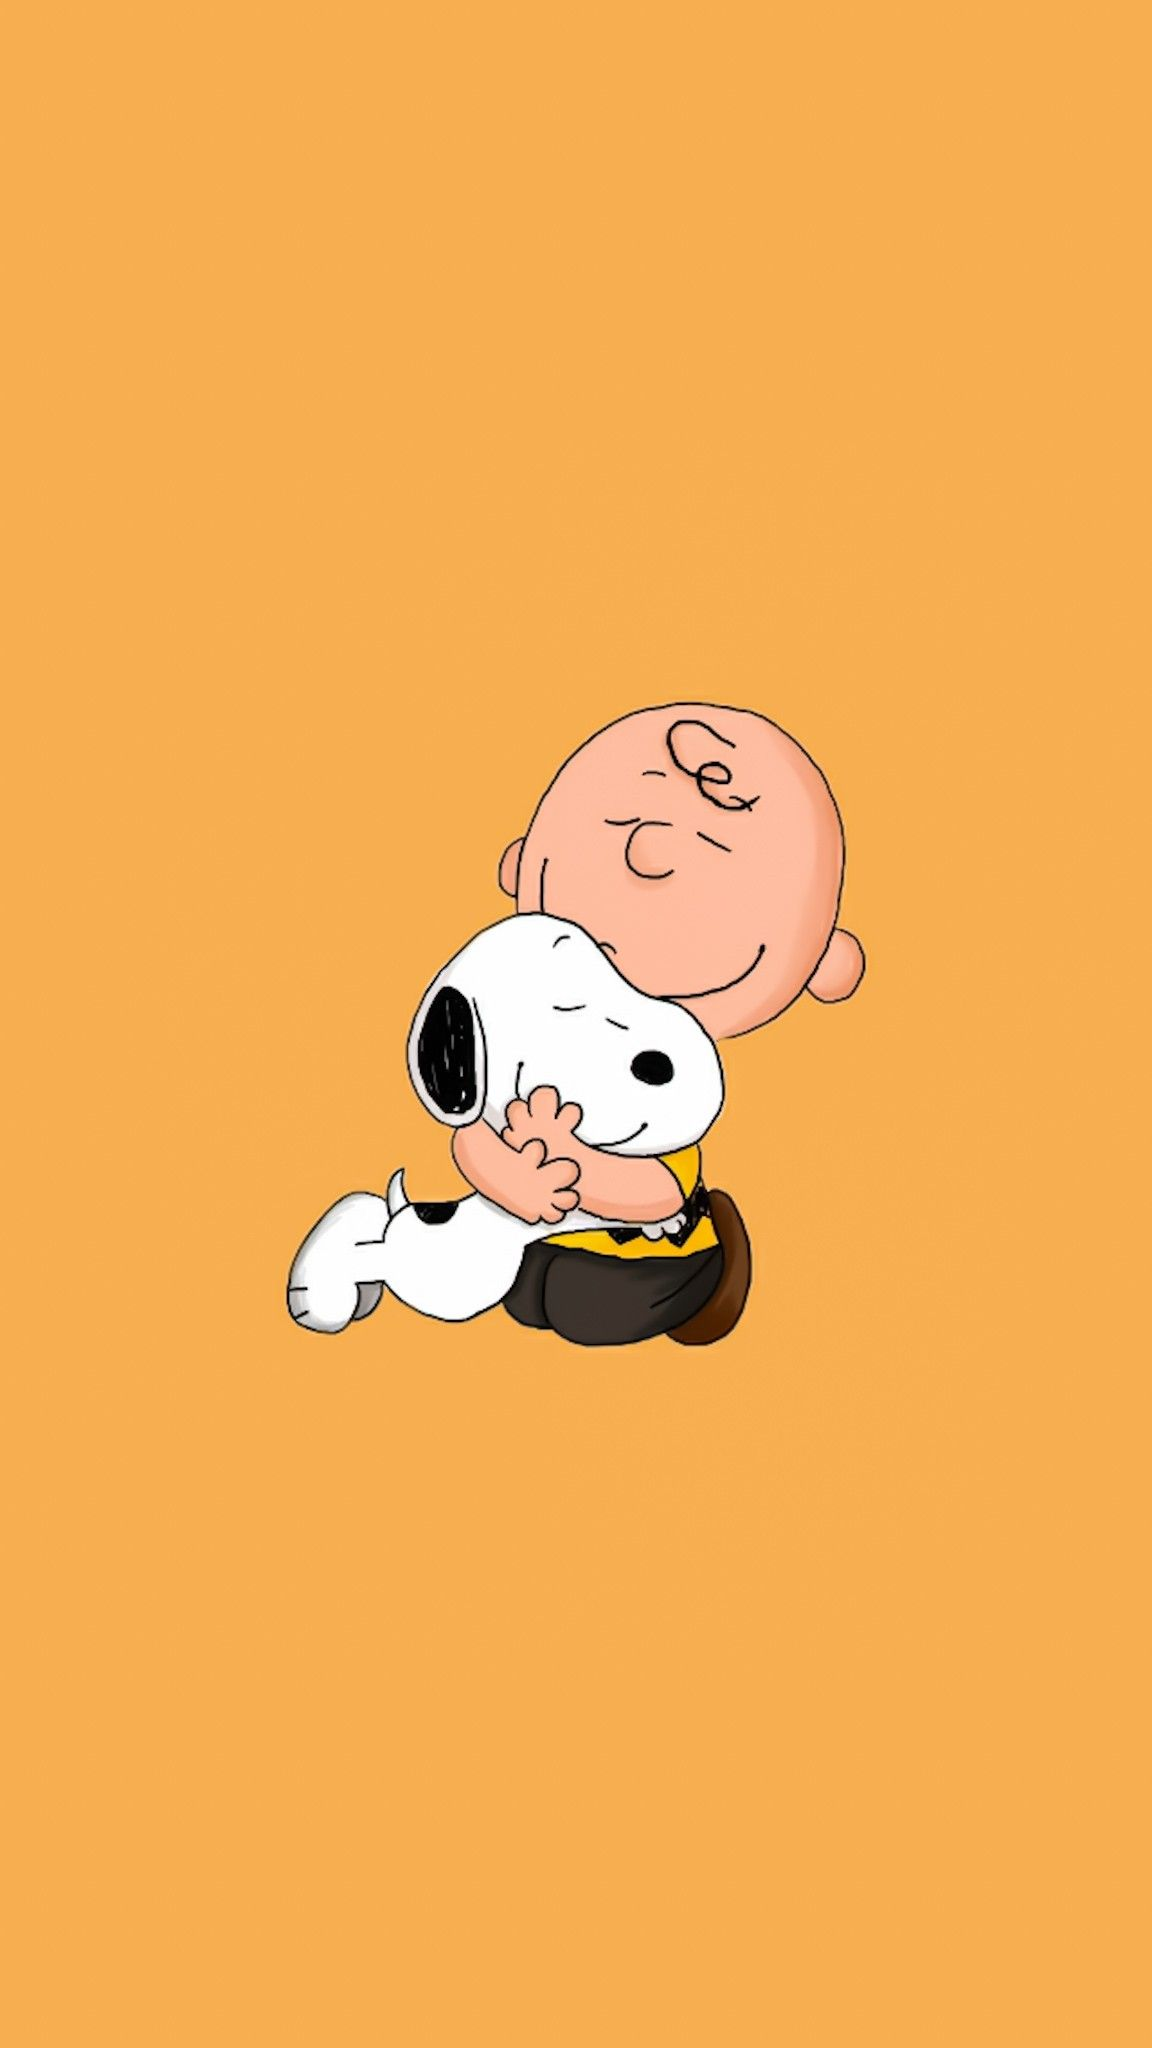 Pin By Aekkalisa On Snoopy Snoopy Wallpaper Snoopy Pictures Snoopy Images